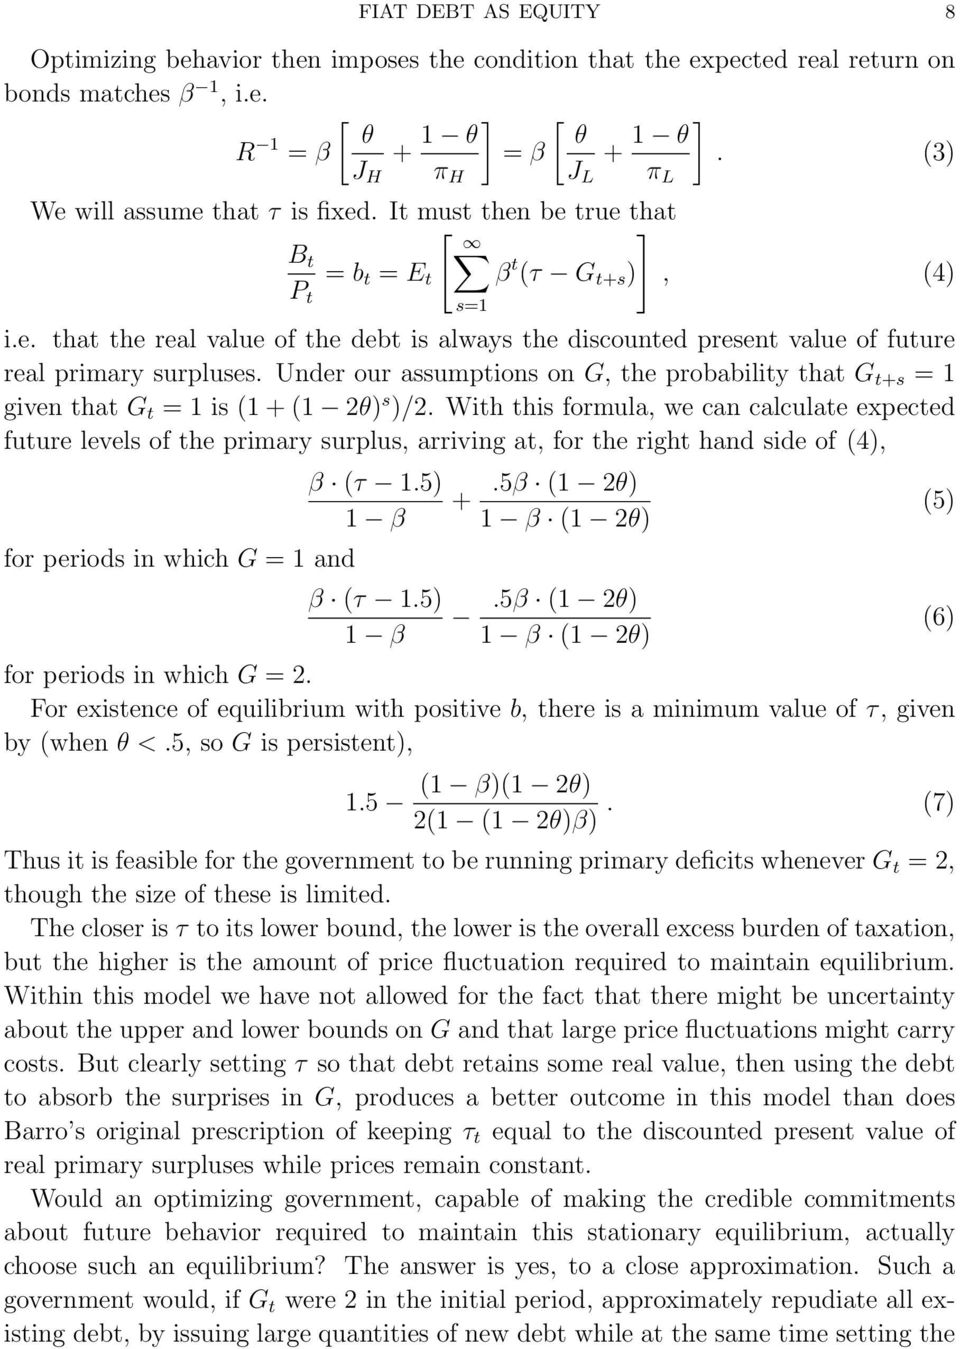 Under our assumptions on G, the probability that G t+s = 1 given that G t = 1 is (1 + (1 2θ) s )/2.